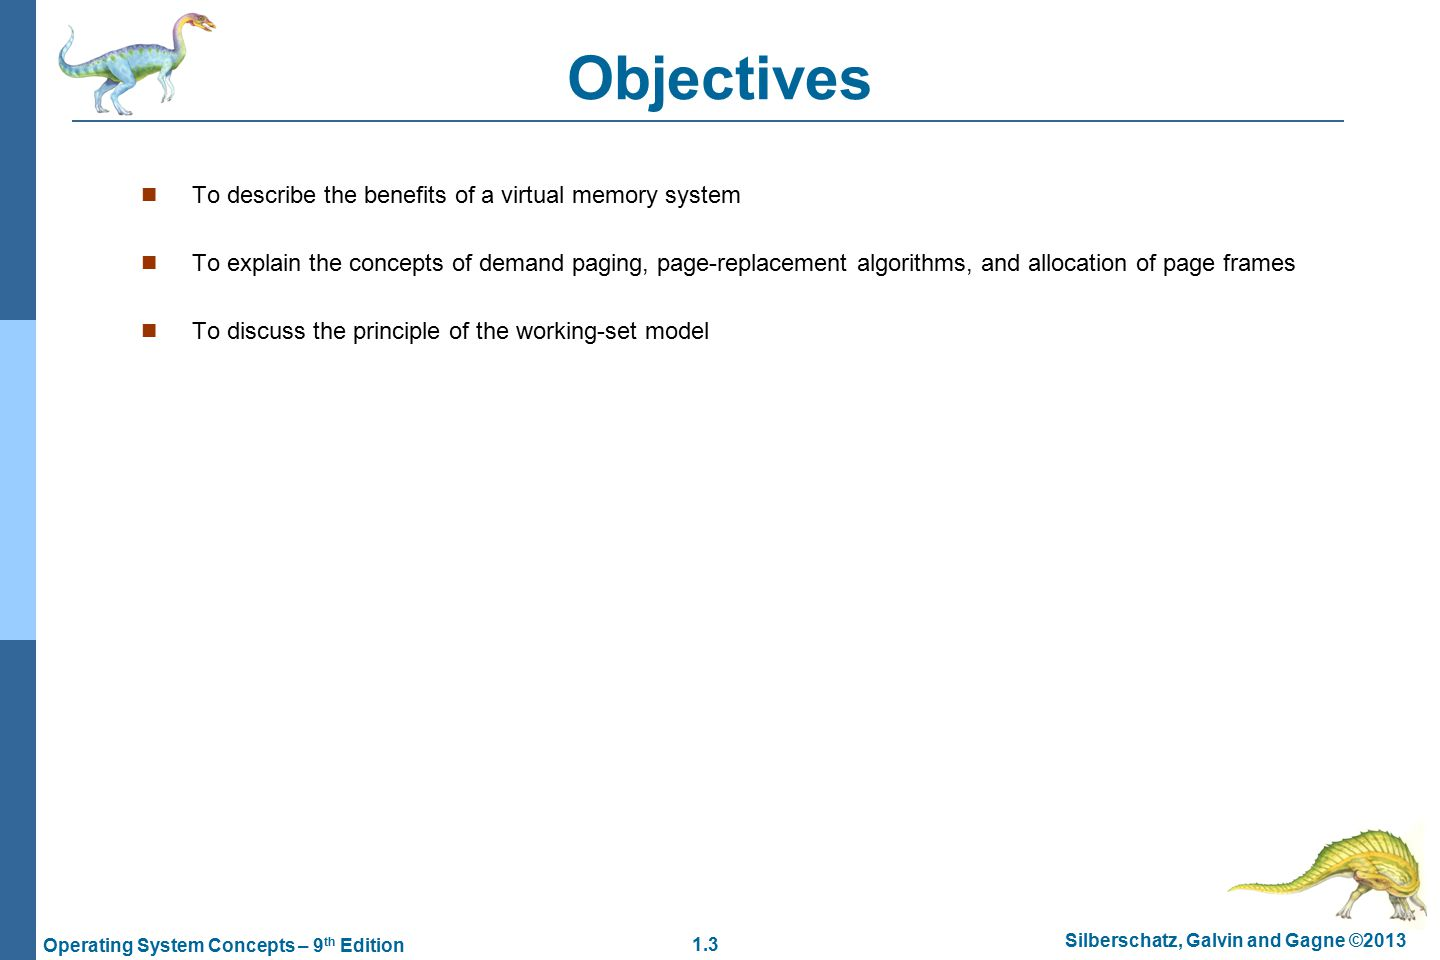 1.3 Silberschatz, Galvin and Gagne ©2013 Operating System Concepts – 9 th Edition Objectives To describe the benefits of a virtual memory system To explain the concepts of demand paging, page-replacement algorithms, and allocation of page frames To discuss the principle of the working-set model